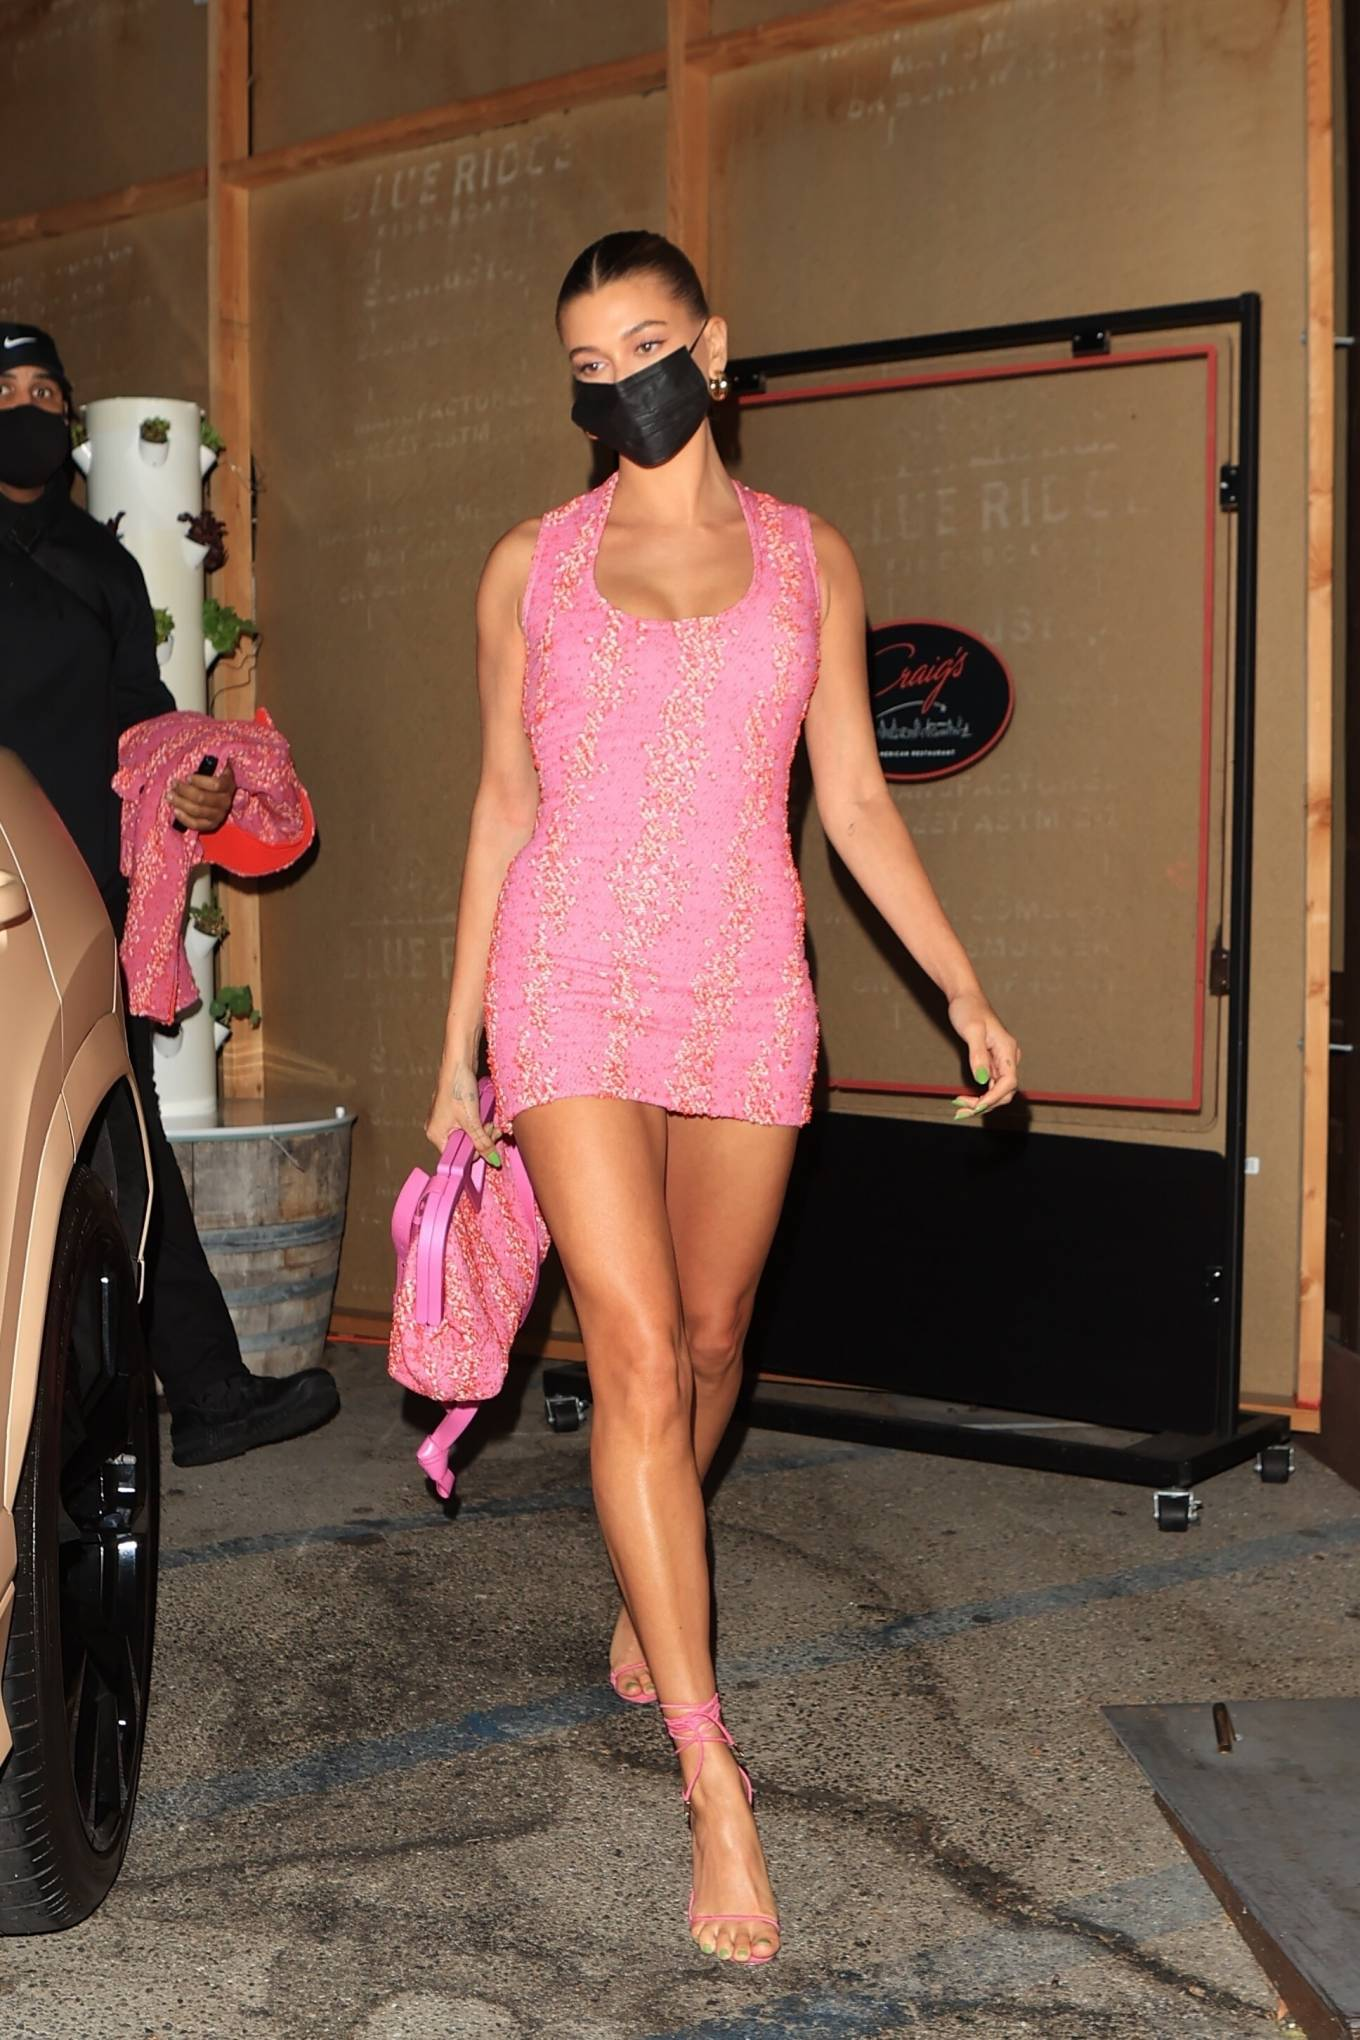 Hailey Baldwin rocking a figure hugging Bottega Veneta dress with a nylon material, back zip, embellished and a scoop neck